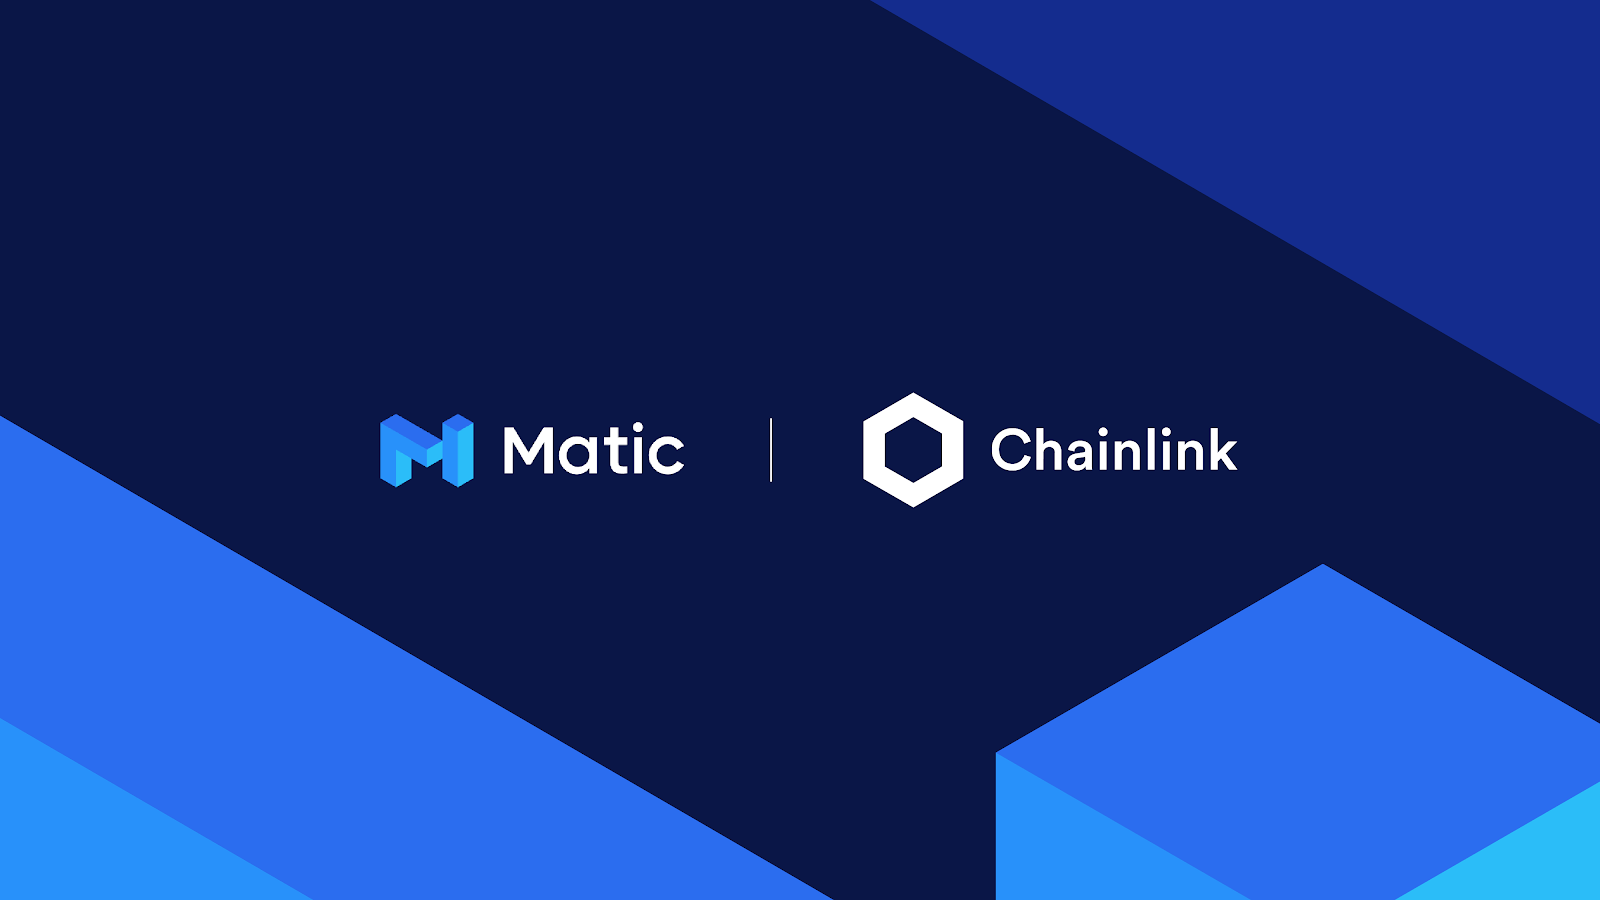 Matic Network has integrated Chainlink natively on its mainnet